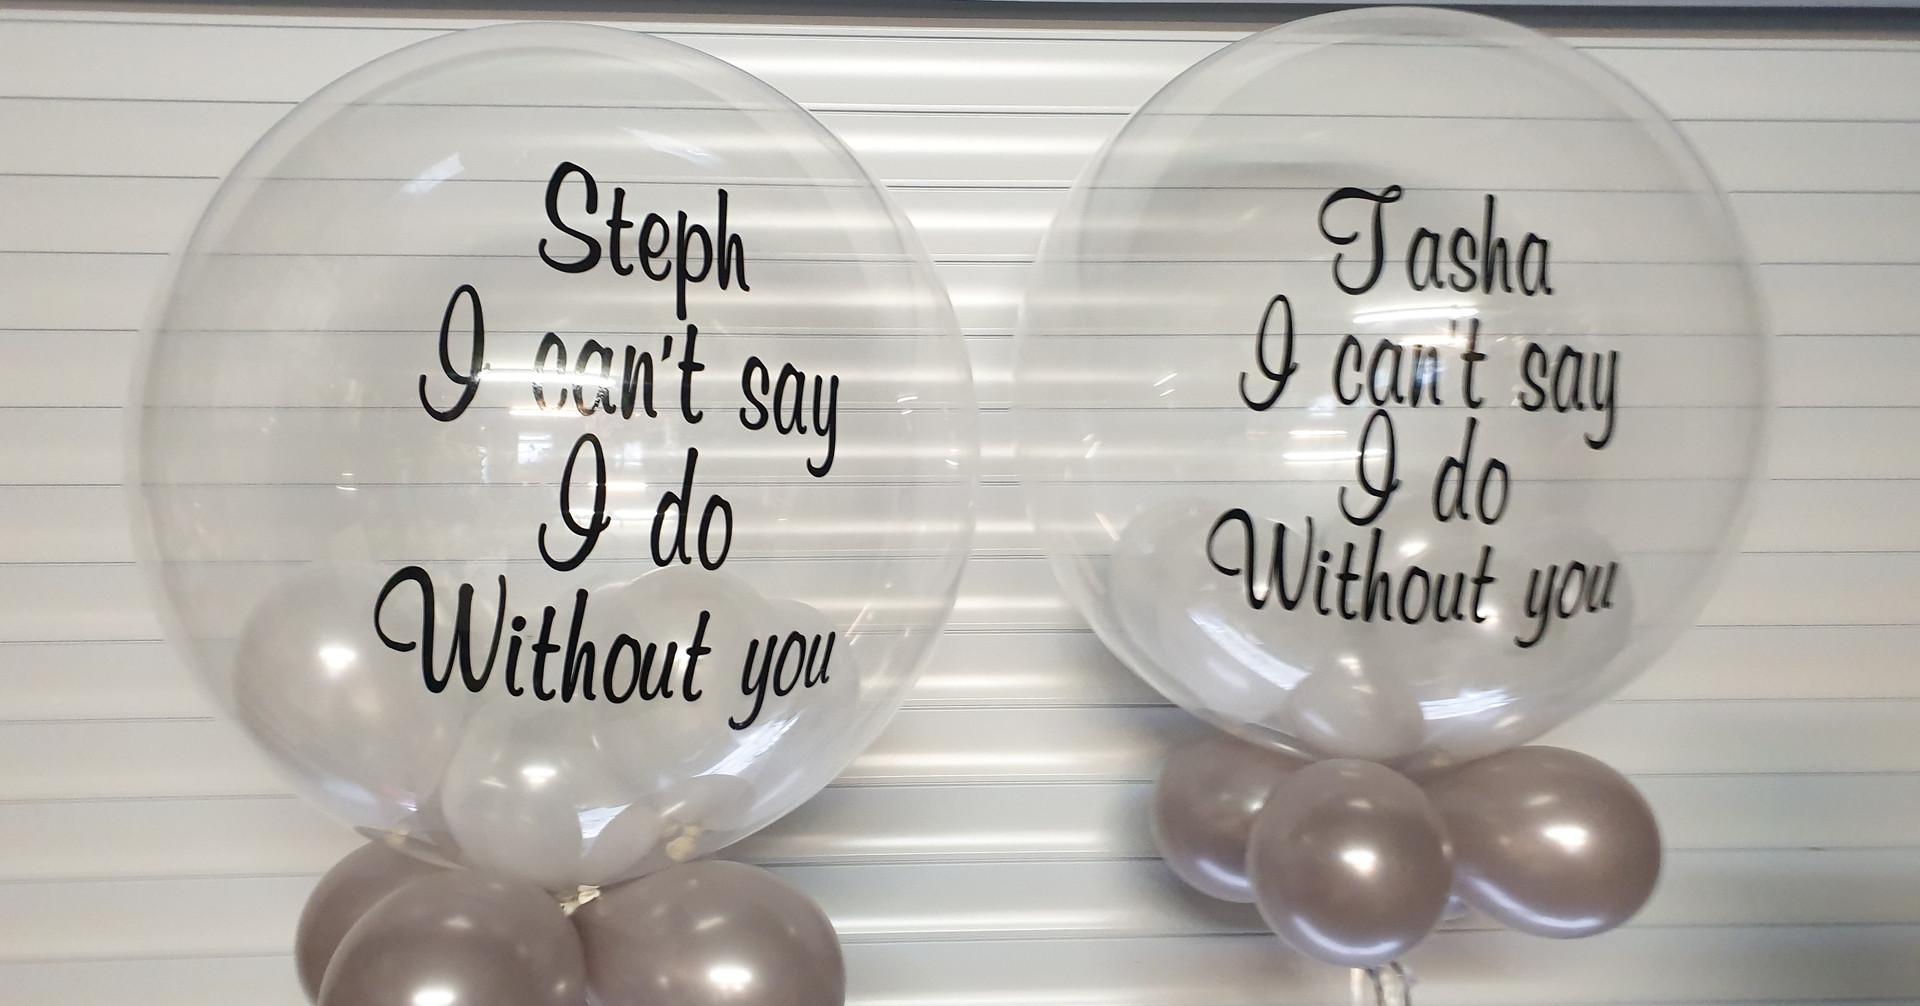 I can't say I do without you bubble balloon